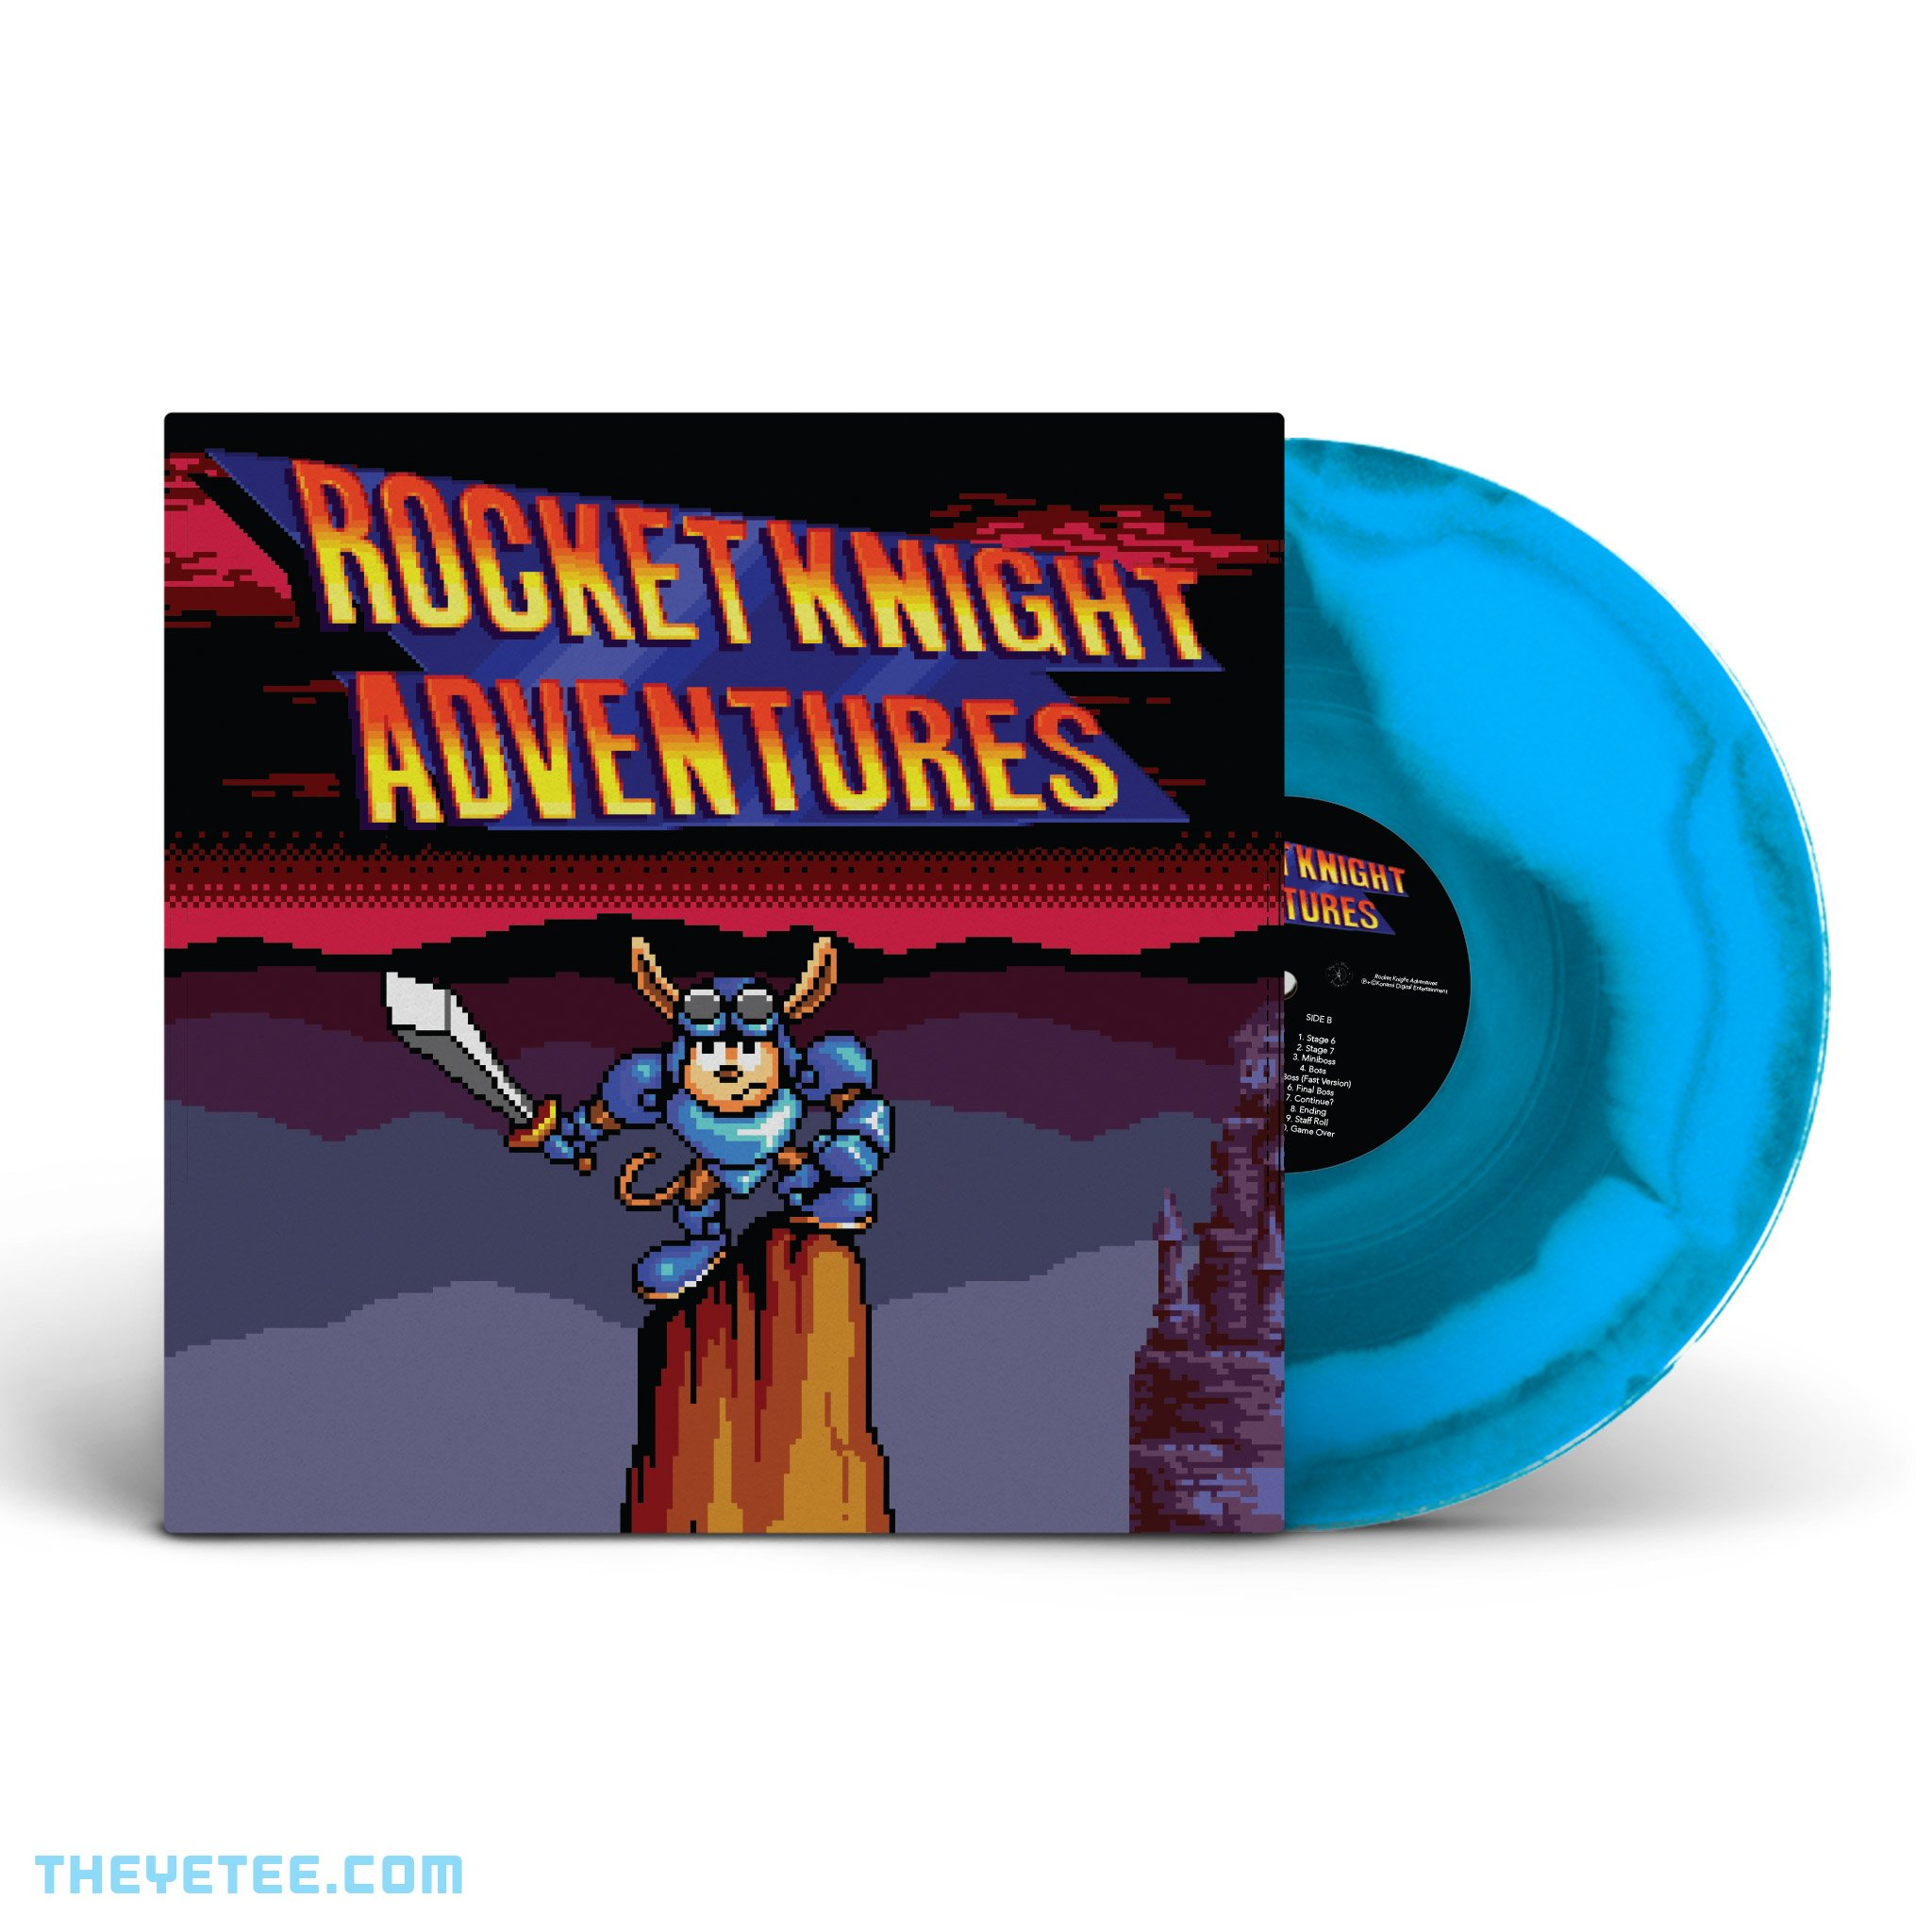 Rocket Knight Adventures - Yetee Variant